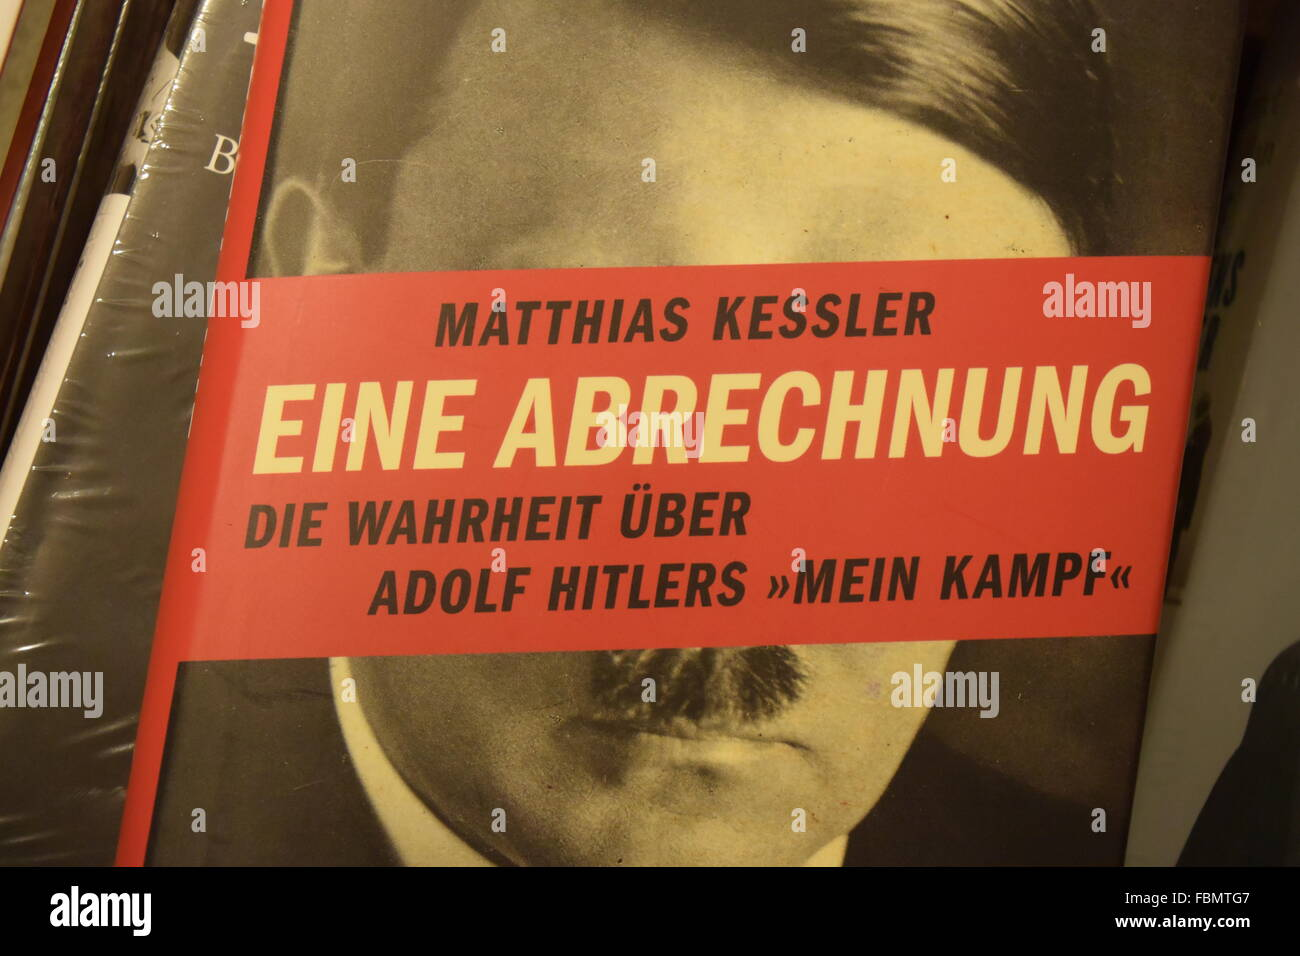 The cover of the book 'Eine Abrechnung', from Matthias Kessler, a critical comment to the book 'Mein - Stock Image